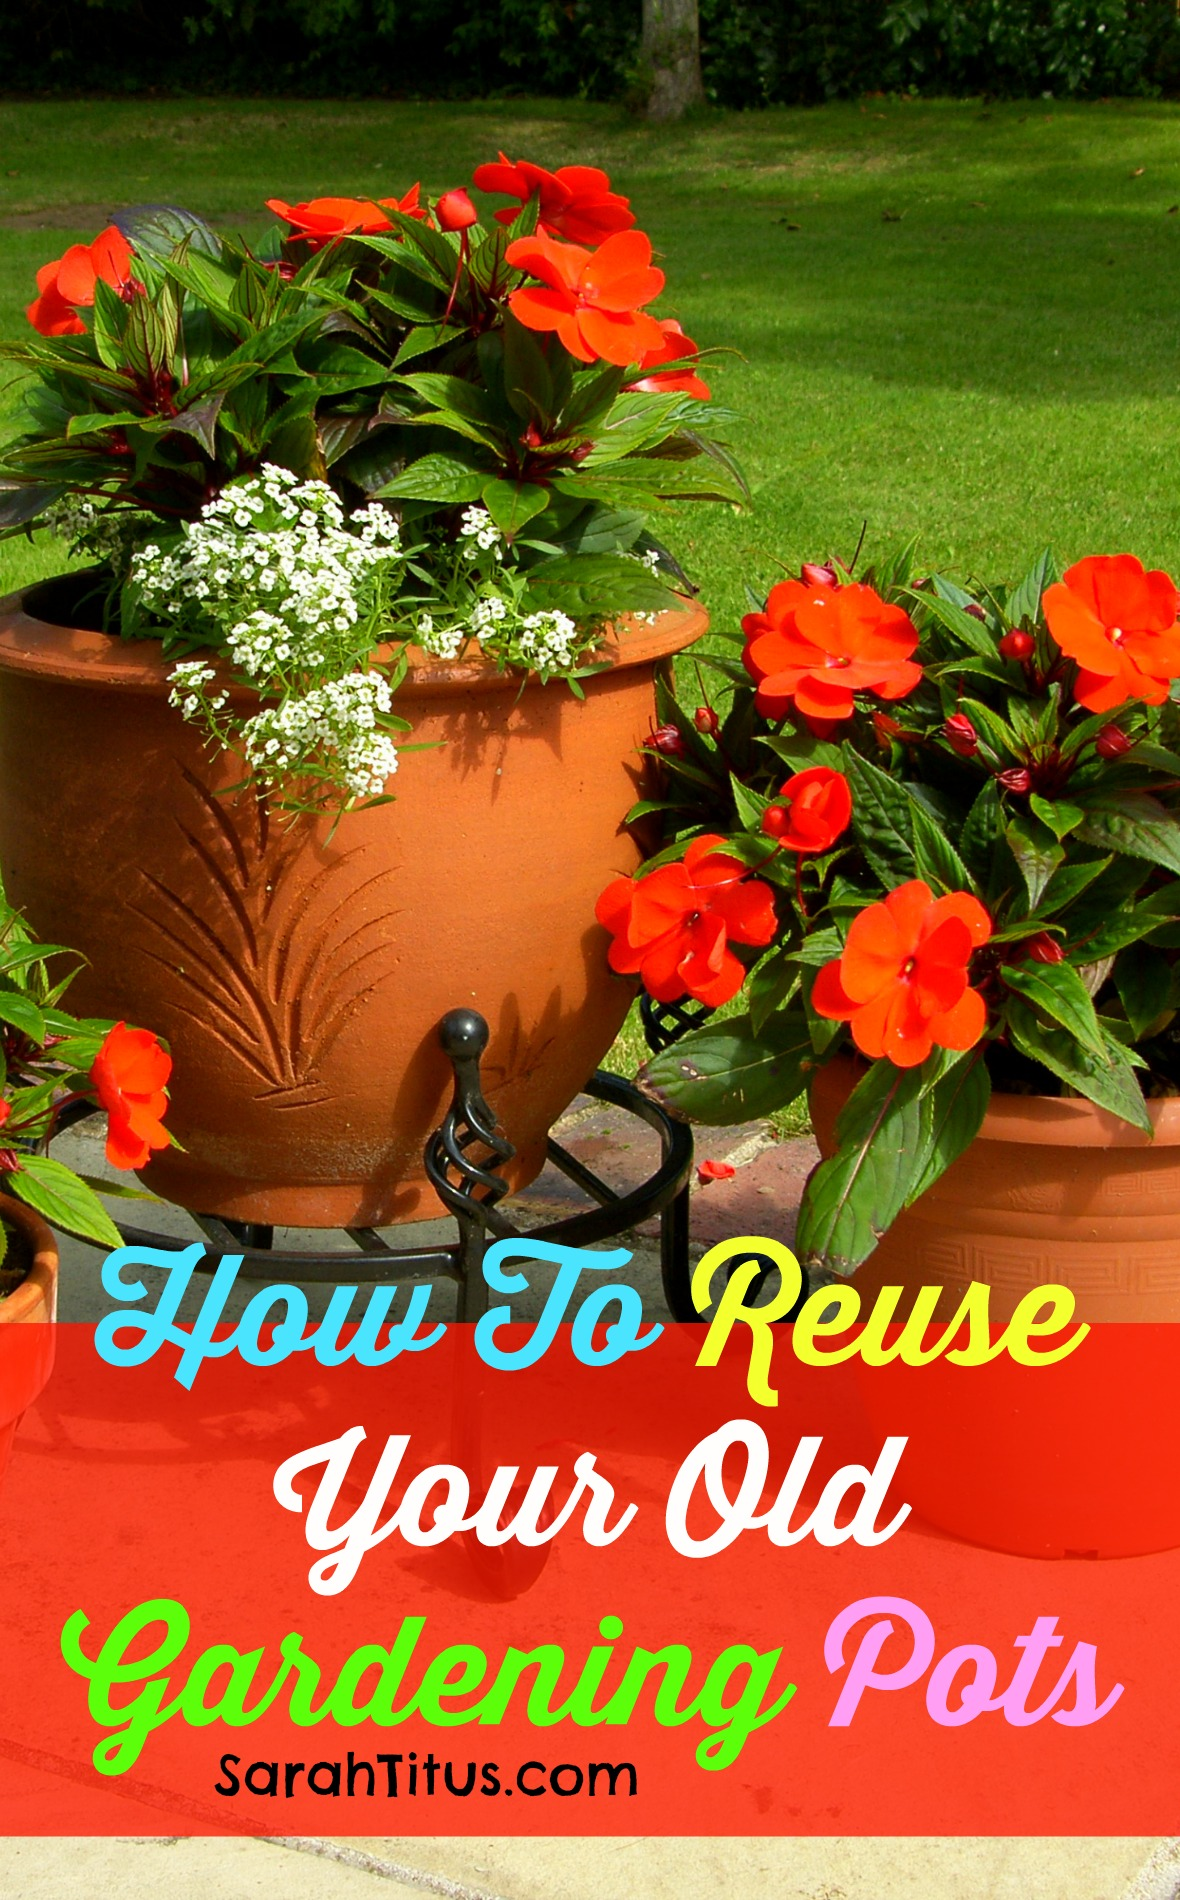 How To Reuse Your Old Gardening Pots